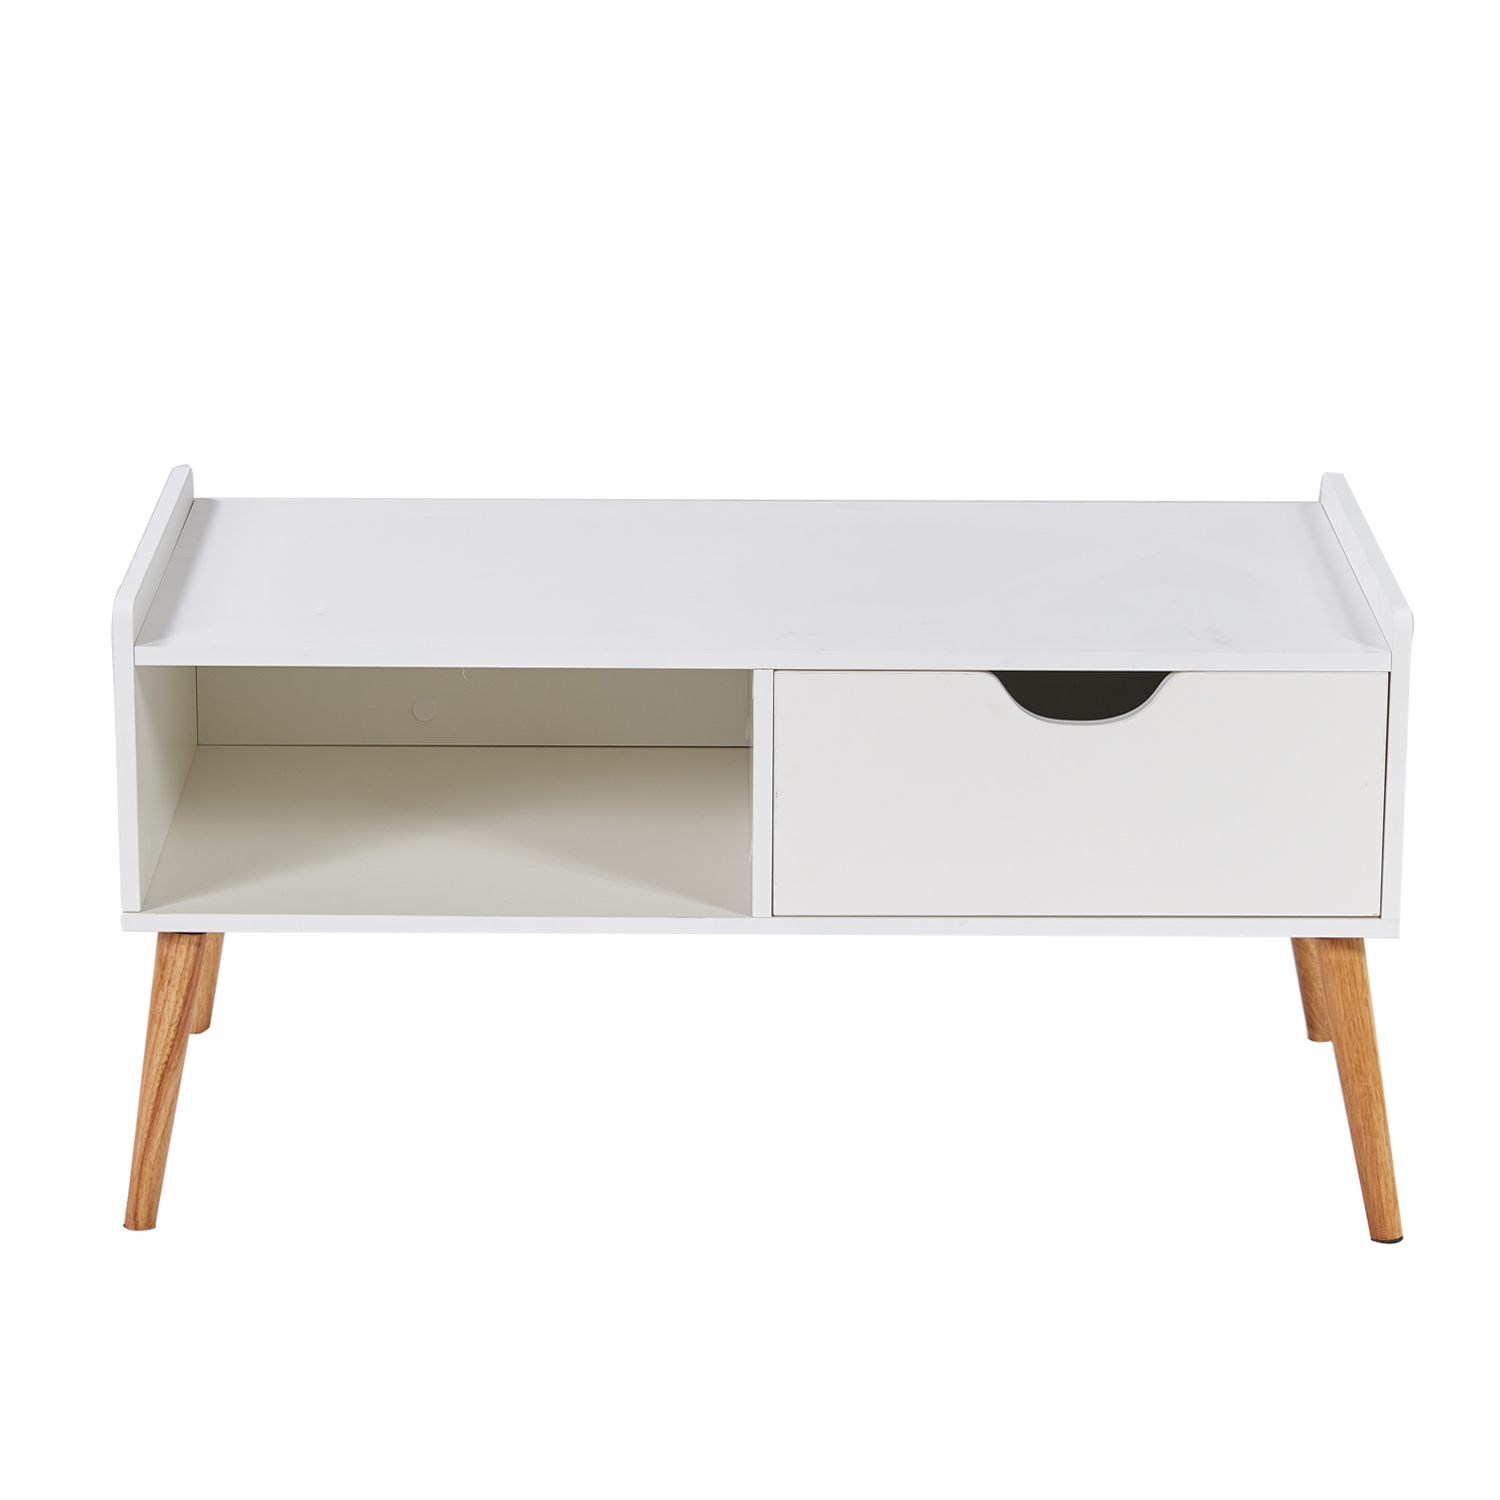 White Coffee Table Cabinet Storage, Media TV Stand, with Drawer and Open Shelf, Bedroom/Living Room Funiture 5aeab08e3474d71b8f00f3cc